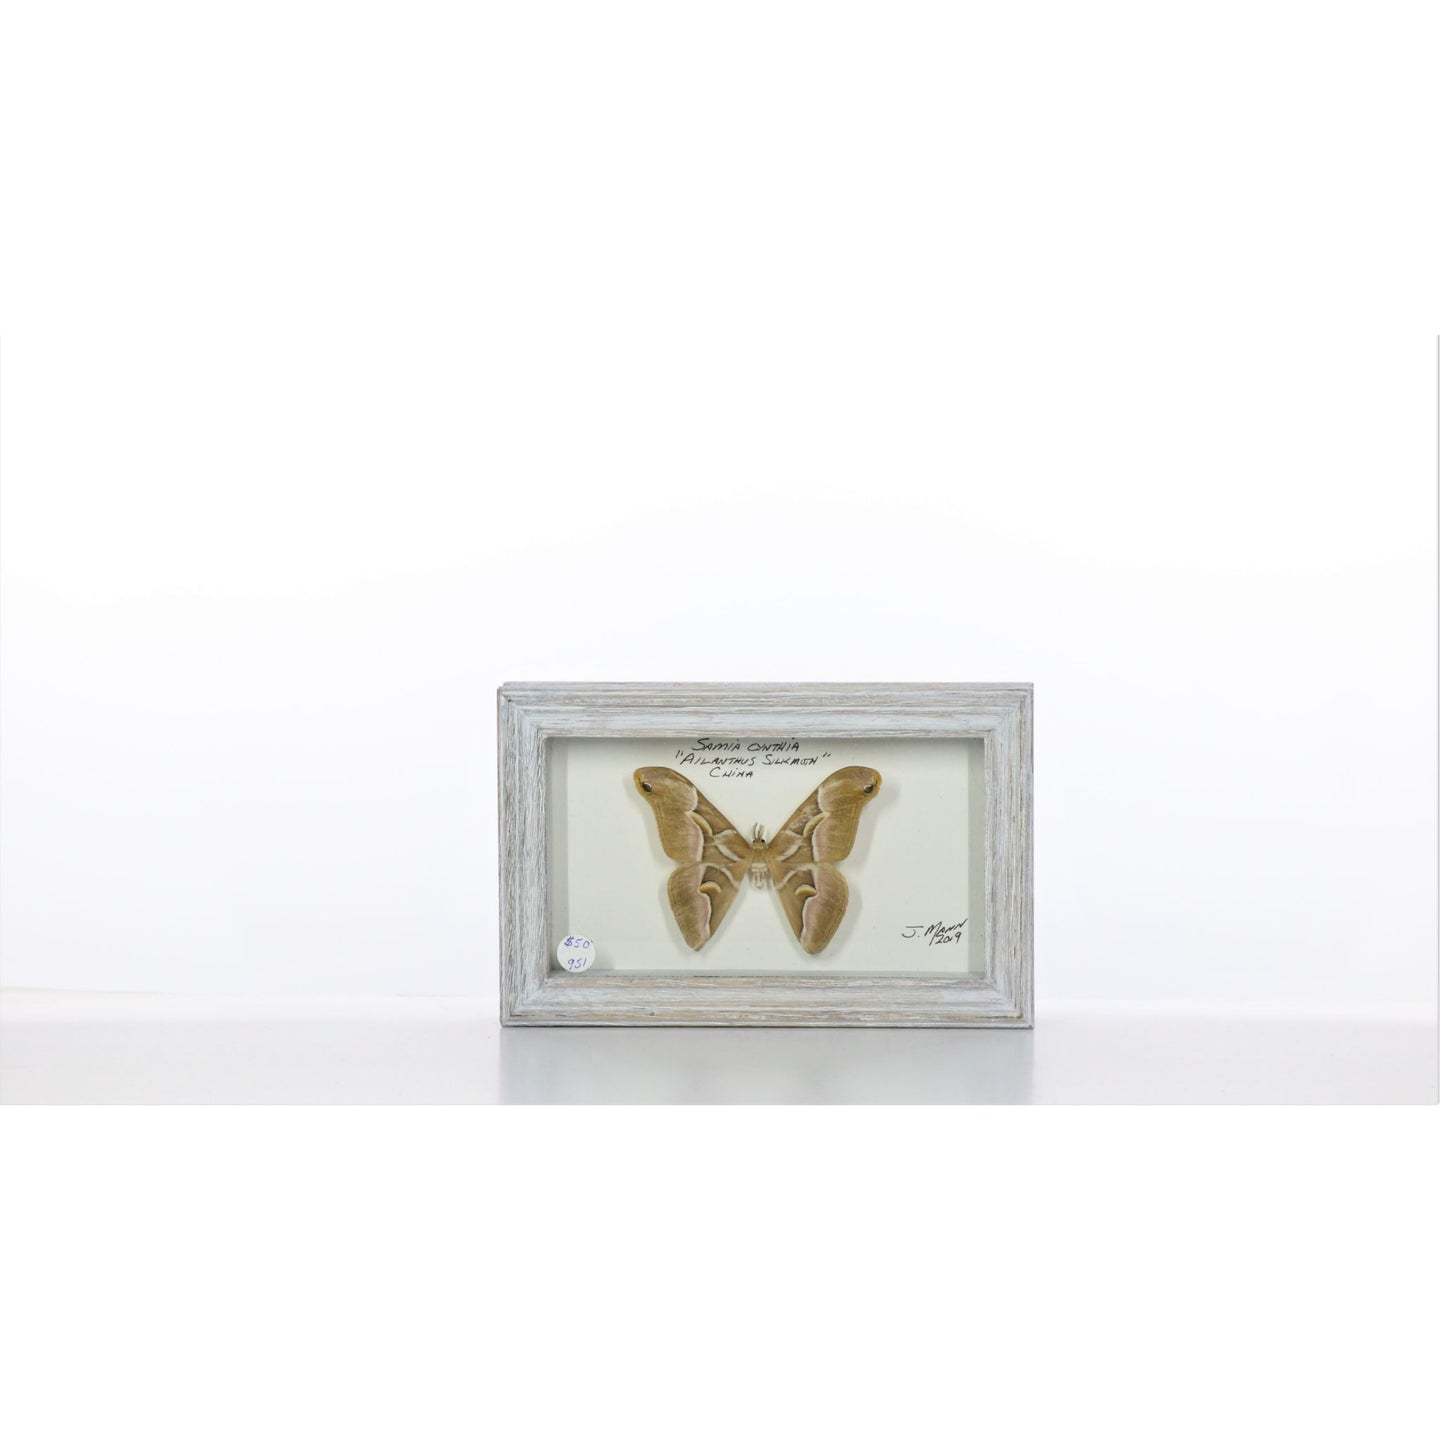 Cynthia Moth 4x7 Gray #951 Framed Art - Insecta Etcetera